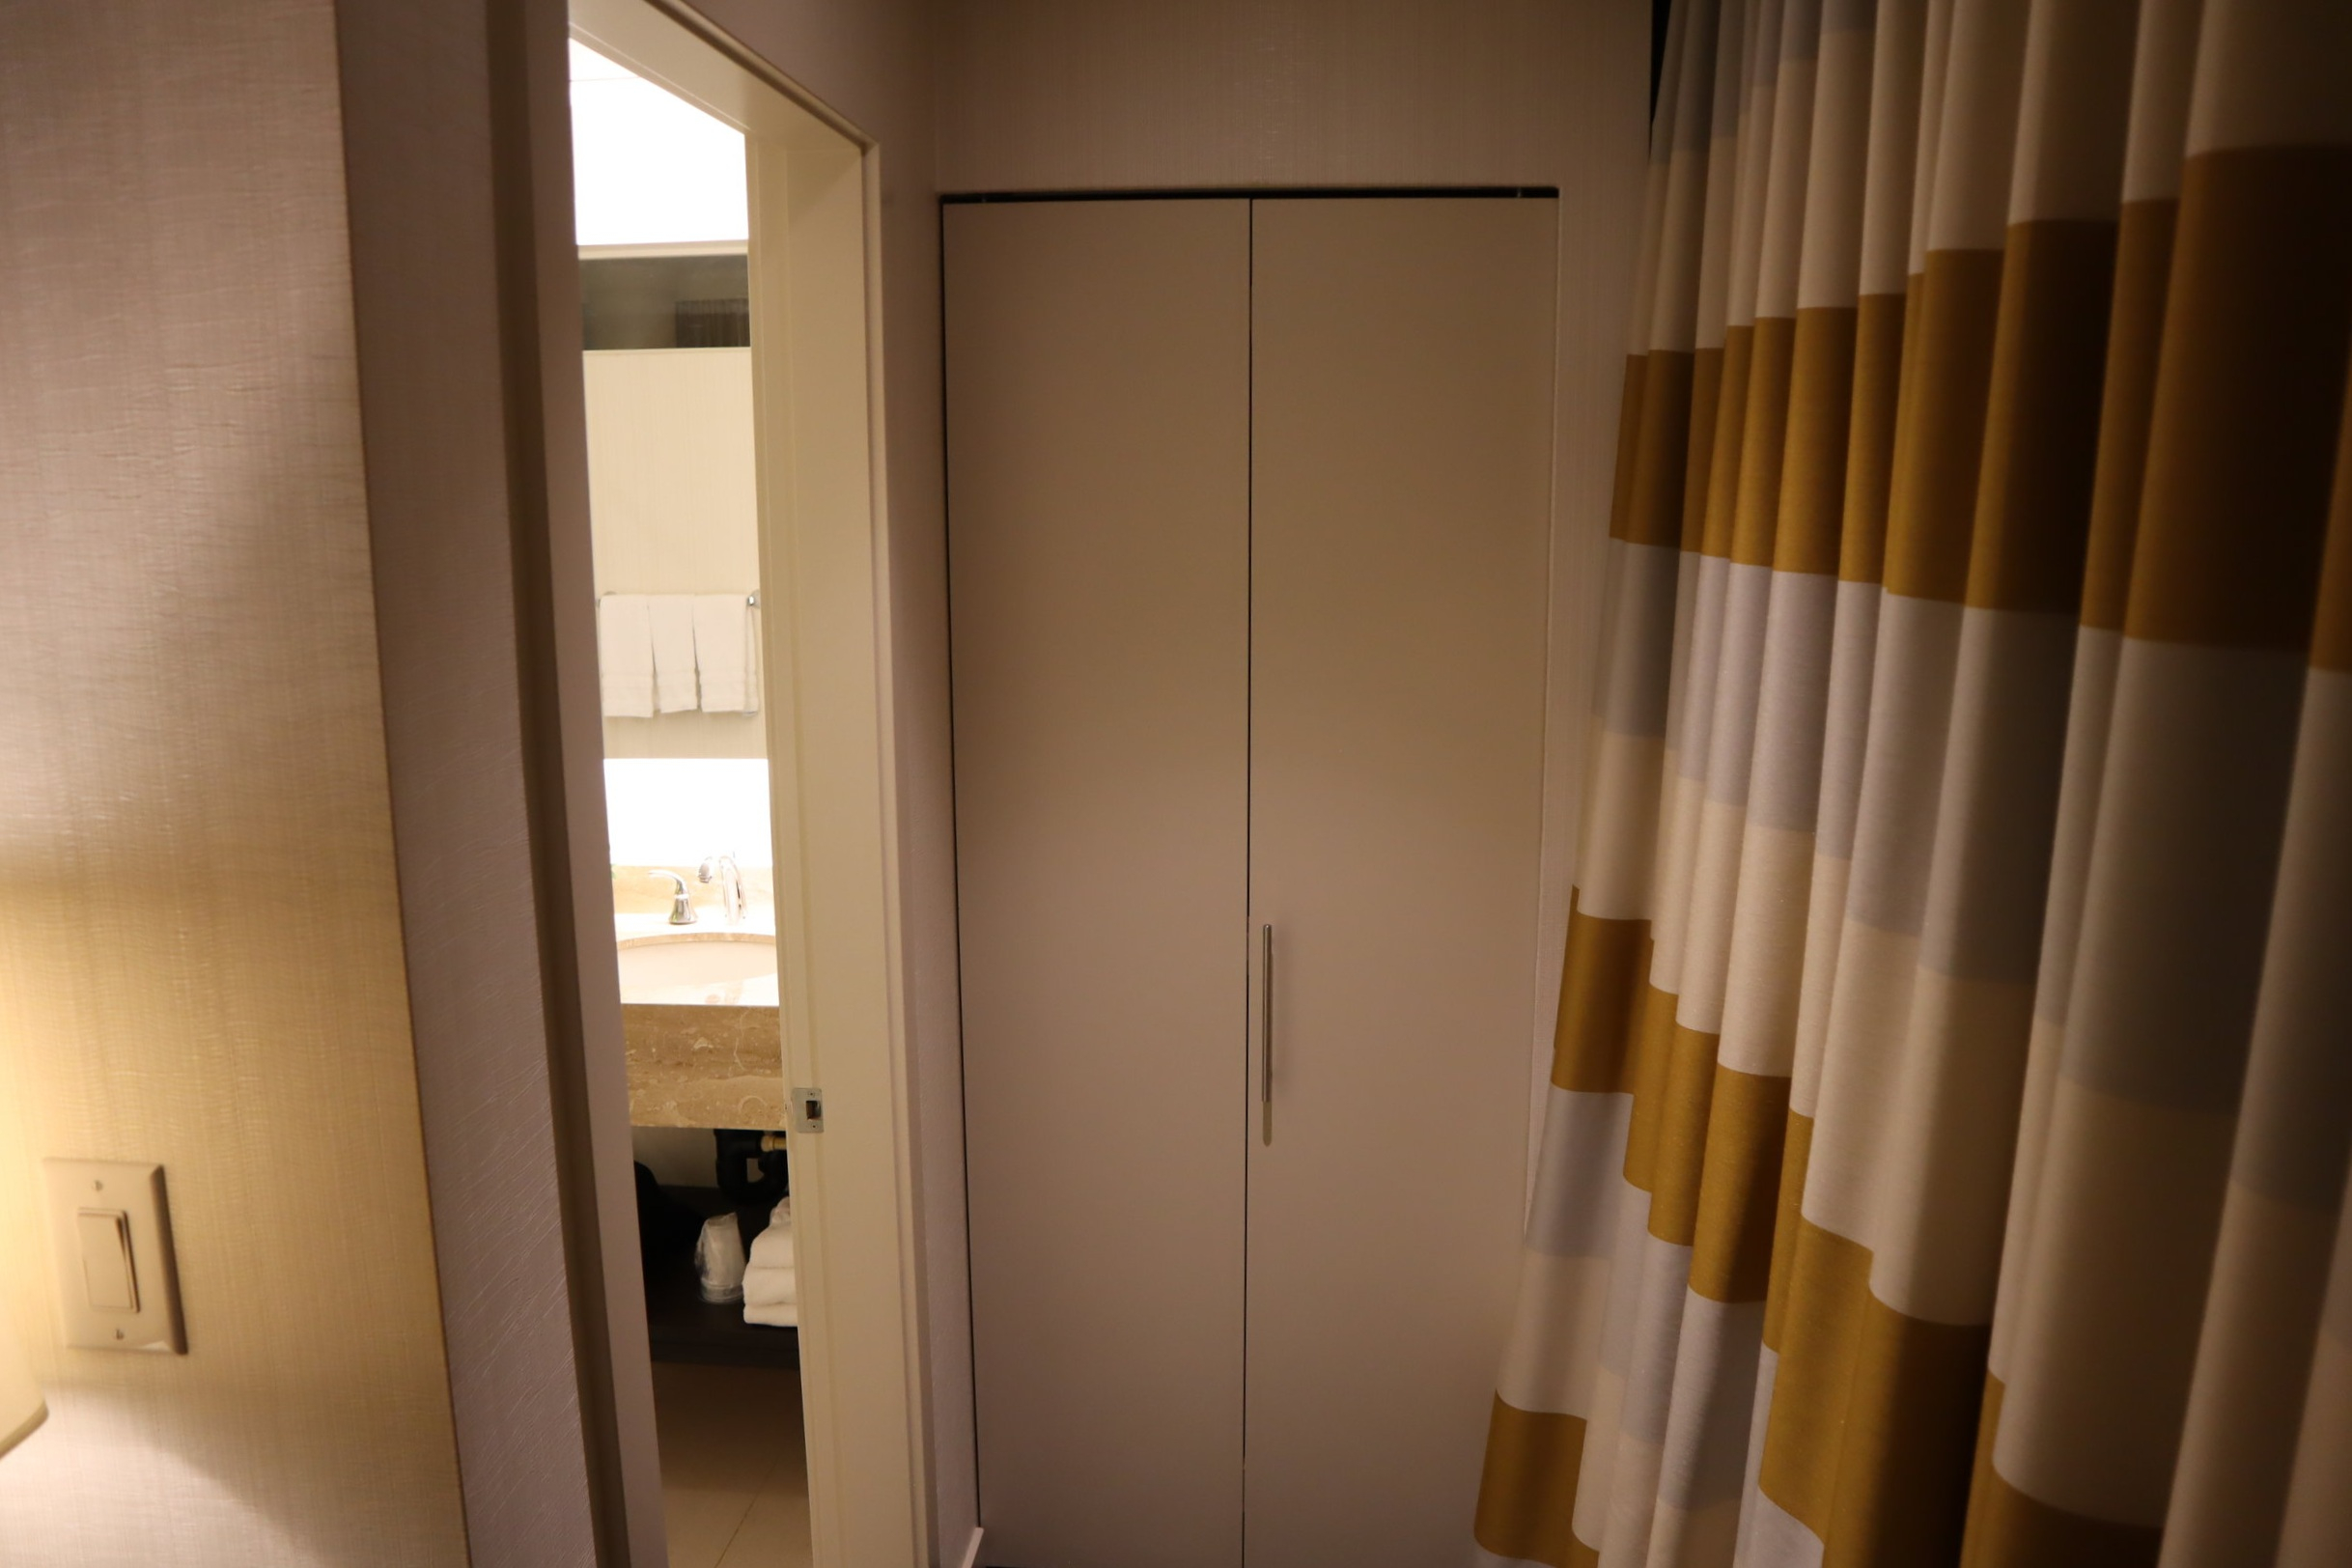 Sheraton Vancouver Wall Centre – Corner suite bathroom